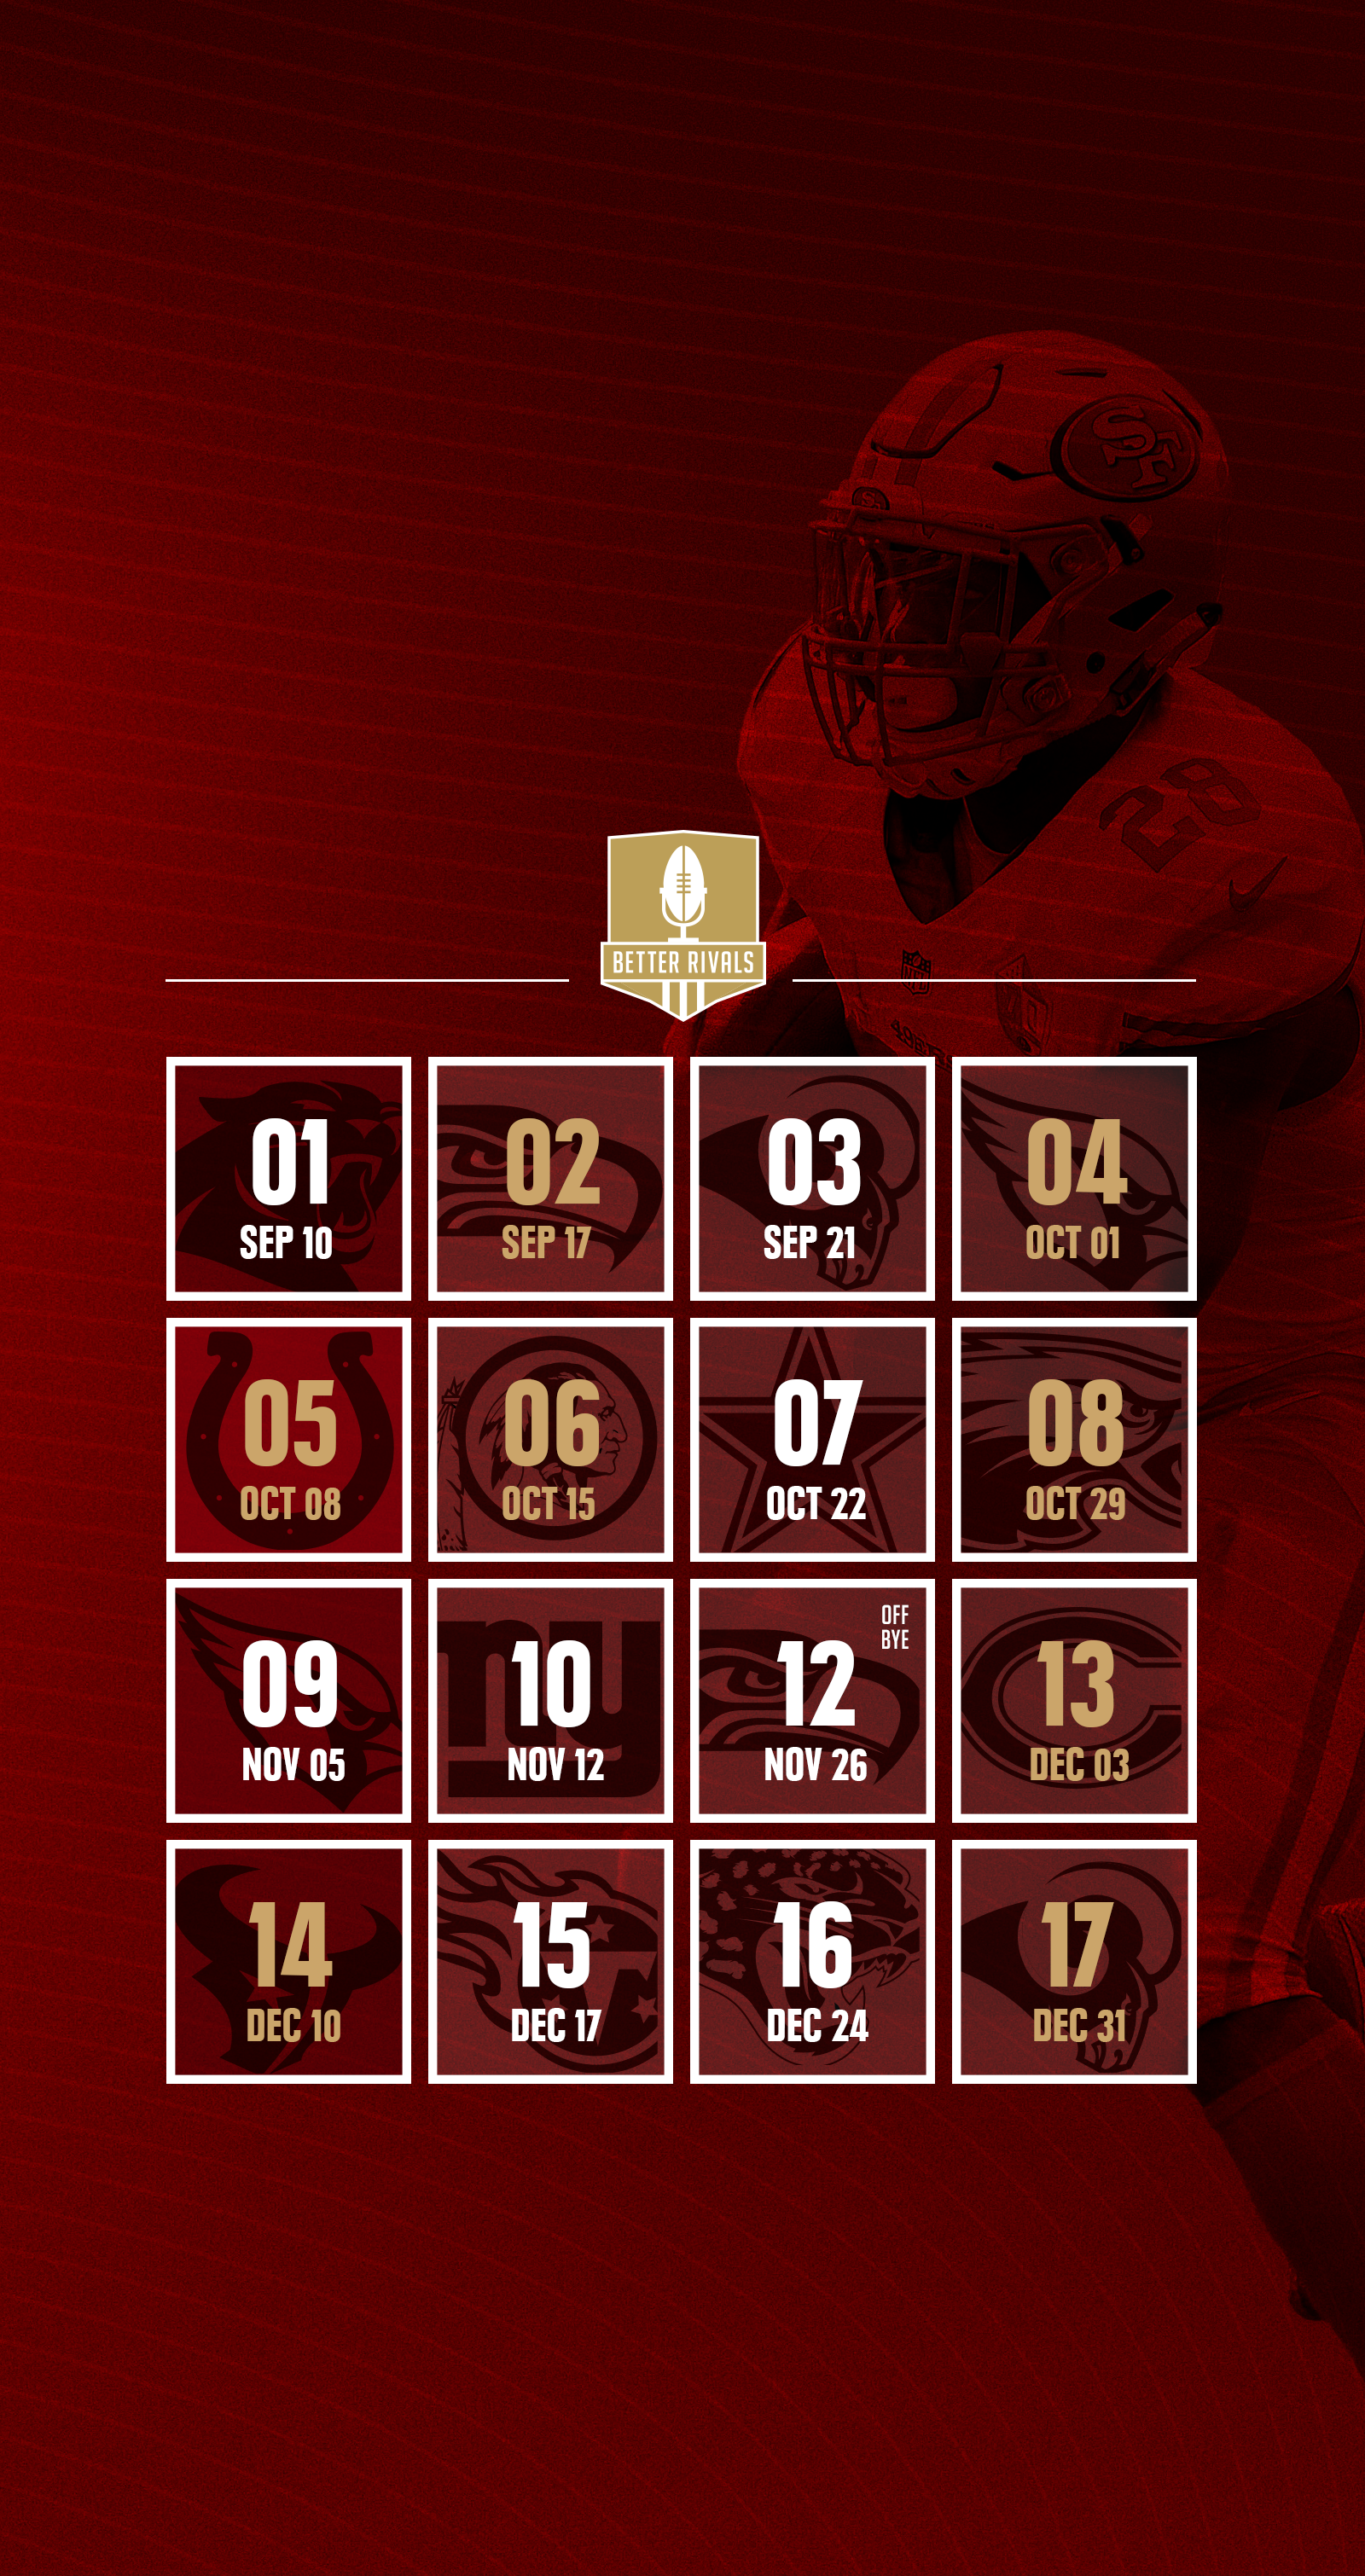 49ers 2017 schedule wallpapers for iphone android desktop 1 of 7 voltagebd Image collections